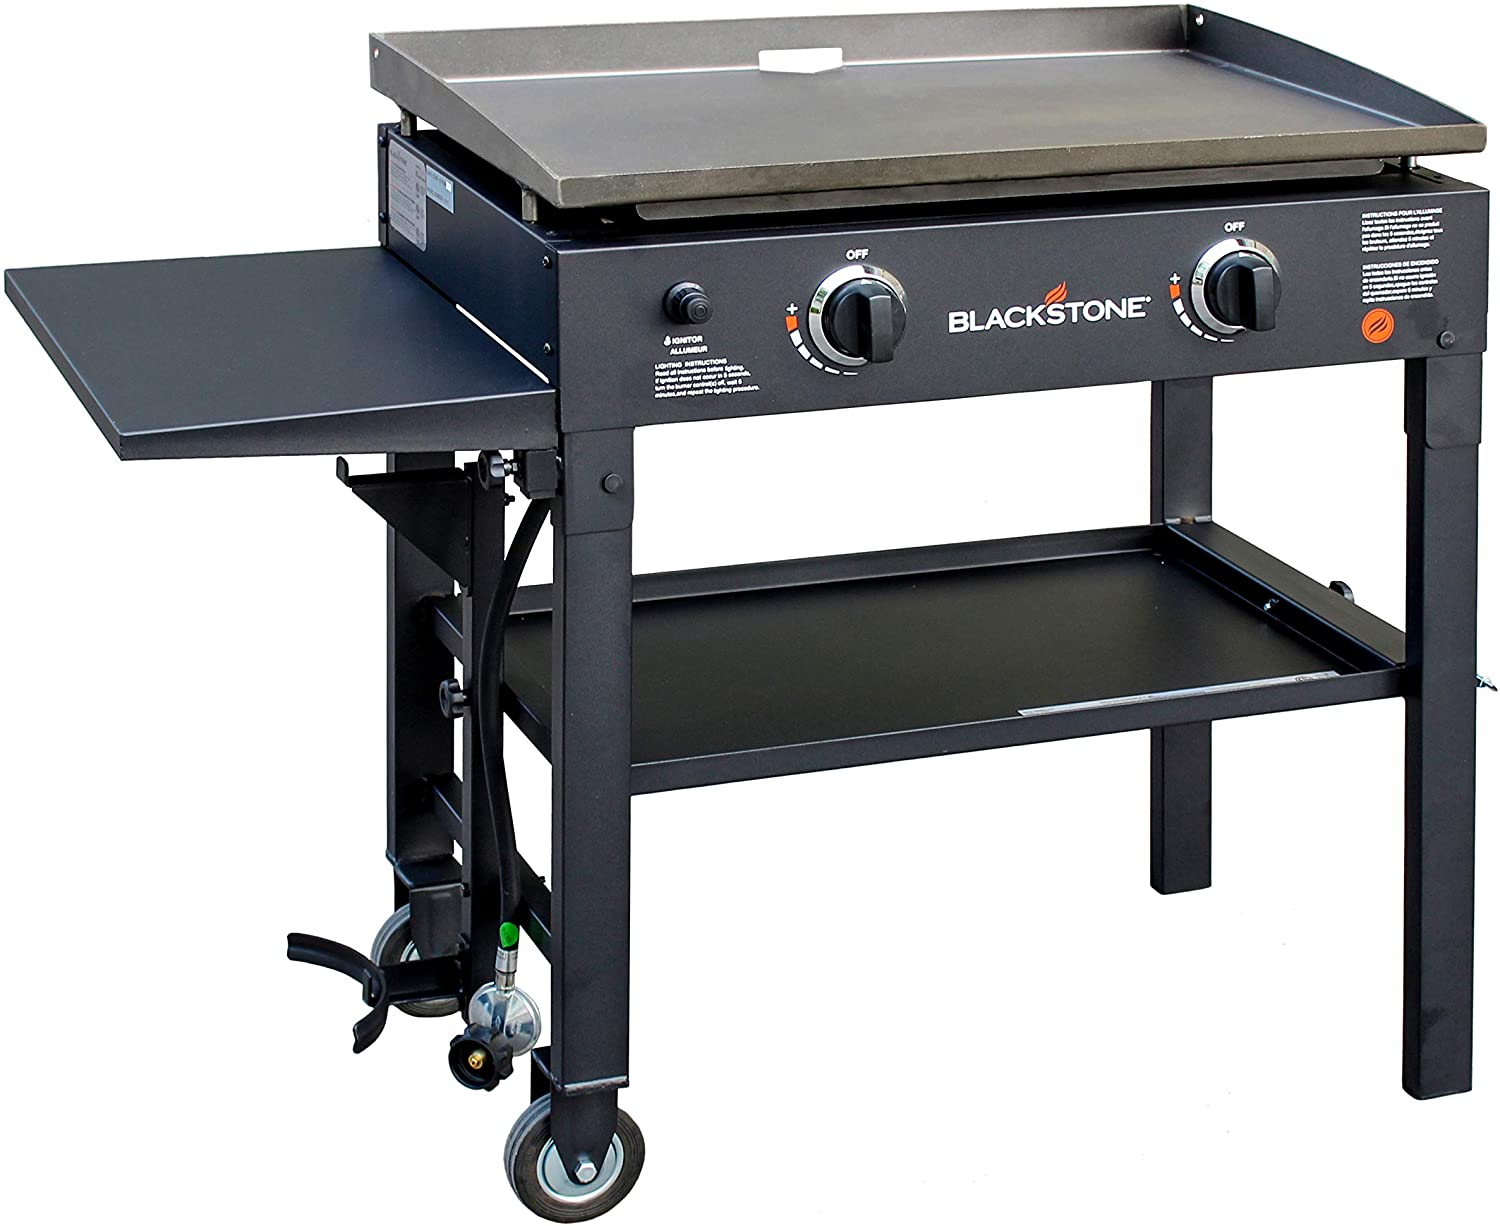 Blackstone 28-inch Outdoor Flat Top Gas Grill Griddle Station